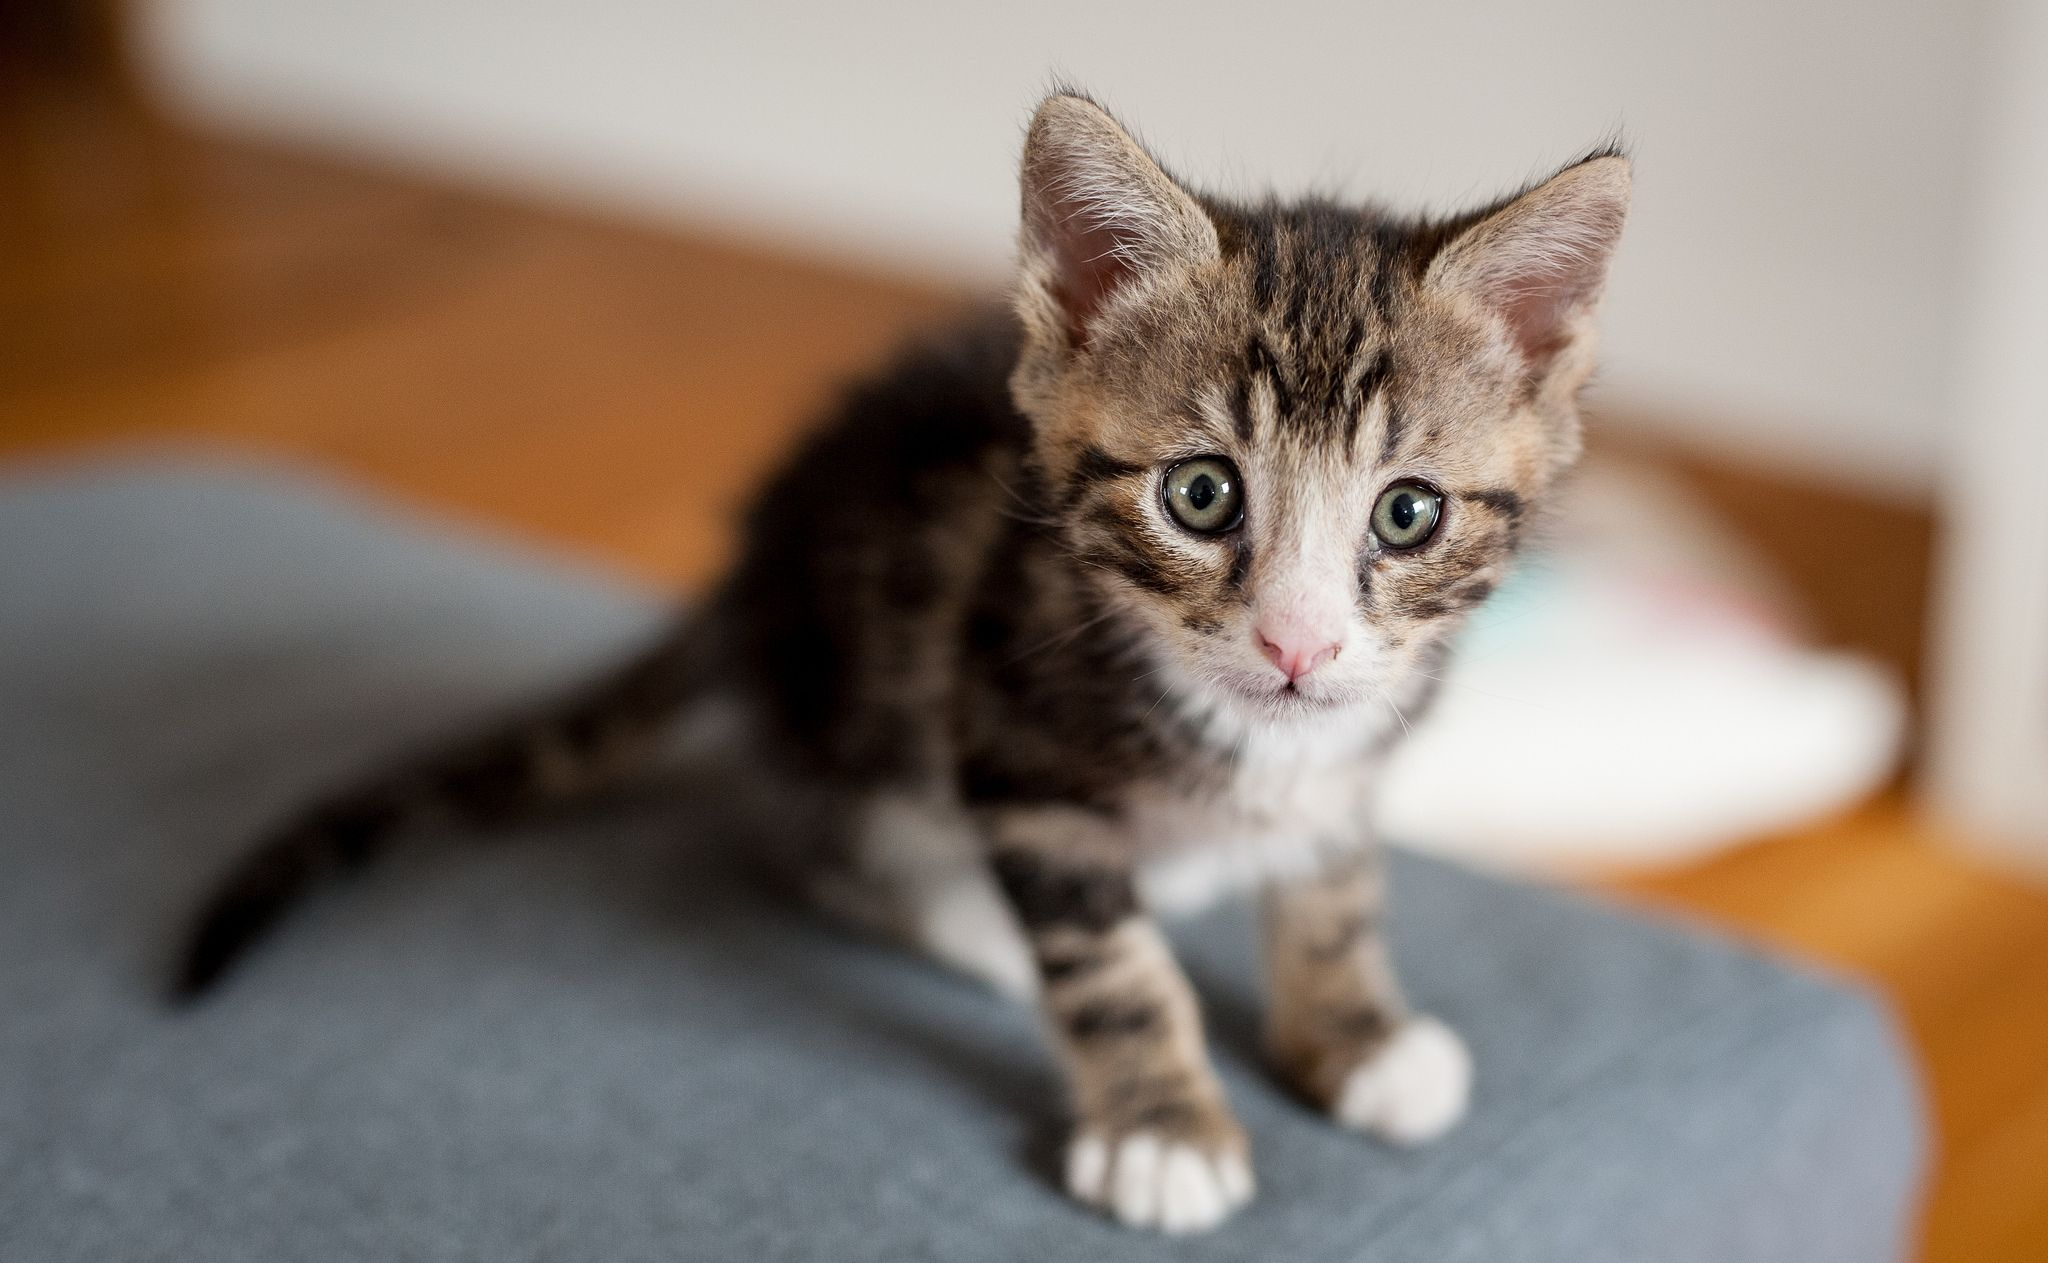 names for your new kitten you may not have considered